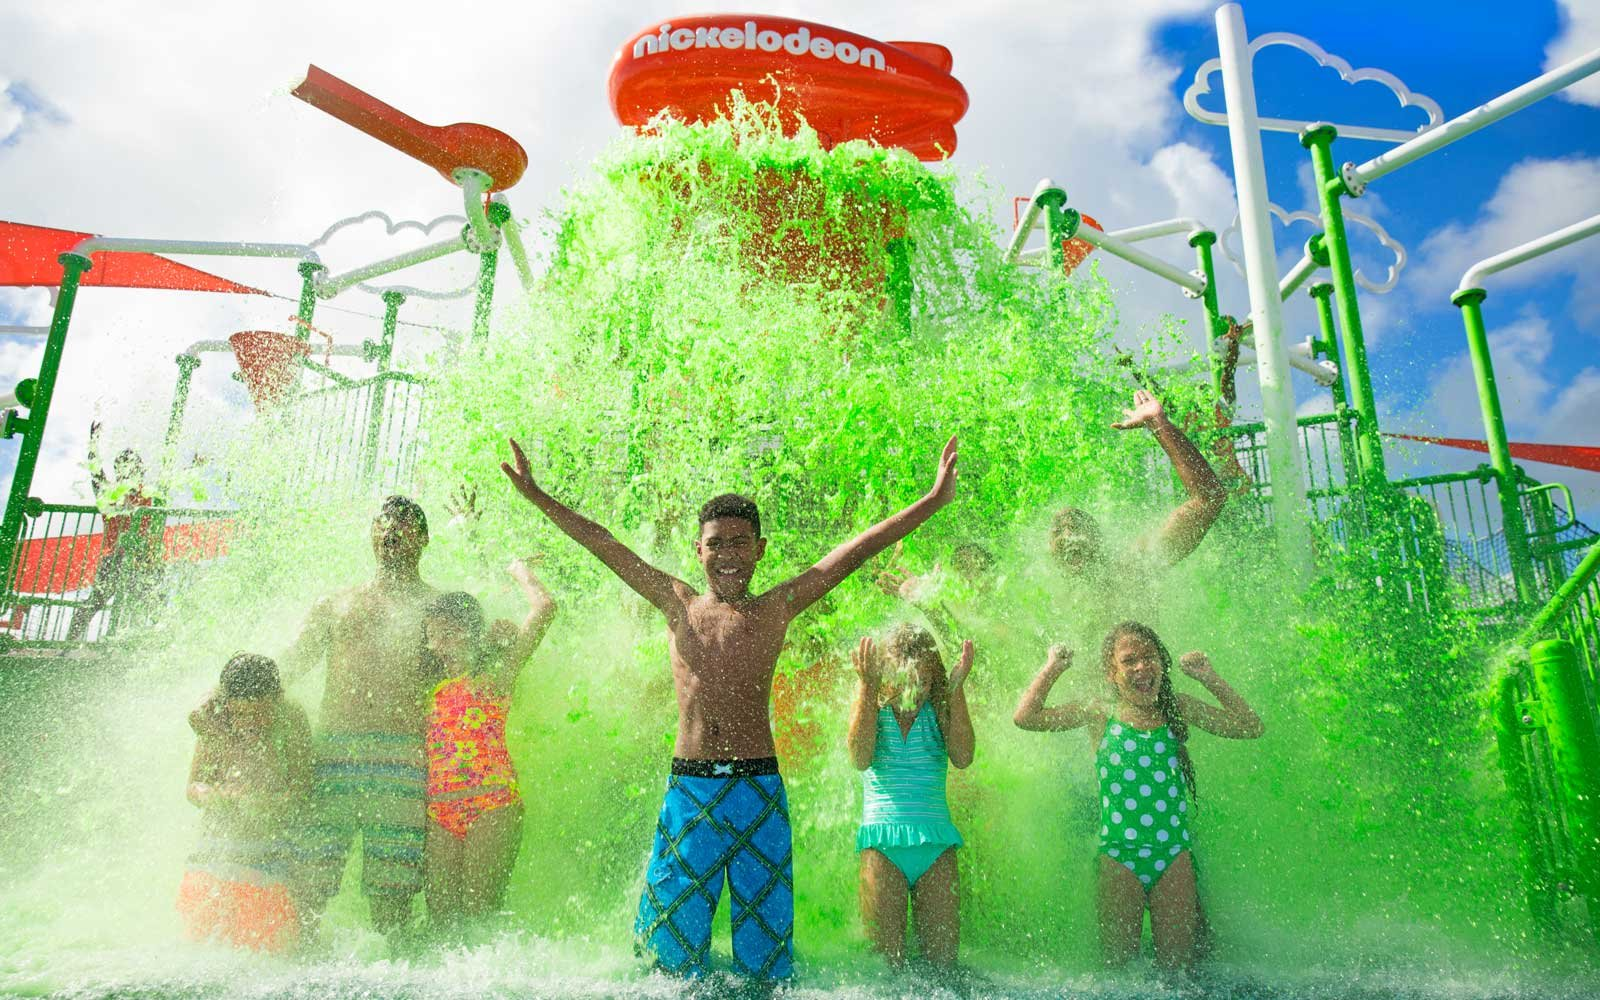 Nickelodeon Resort in Punta Cana